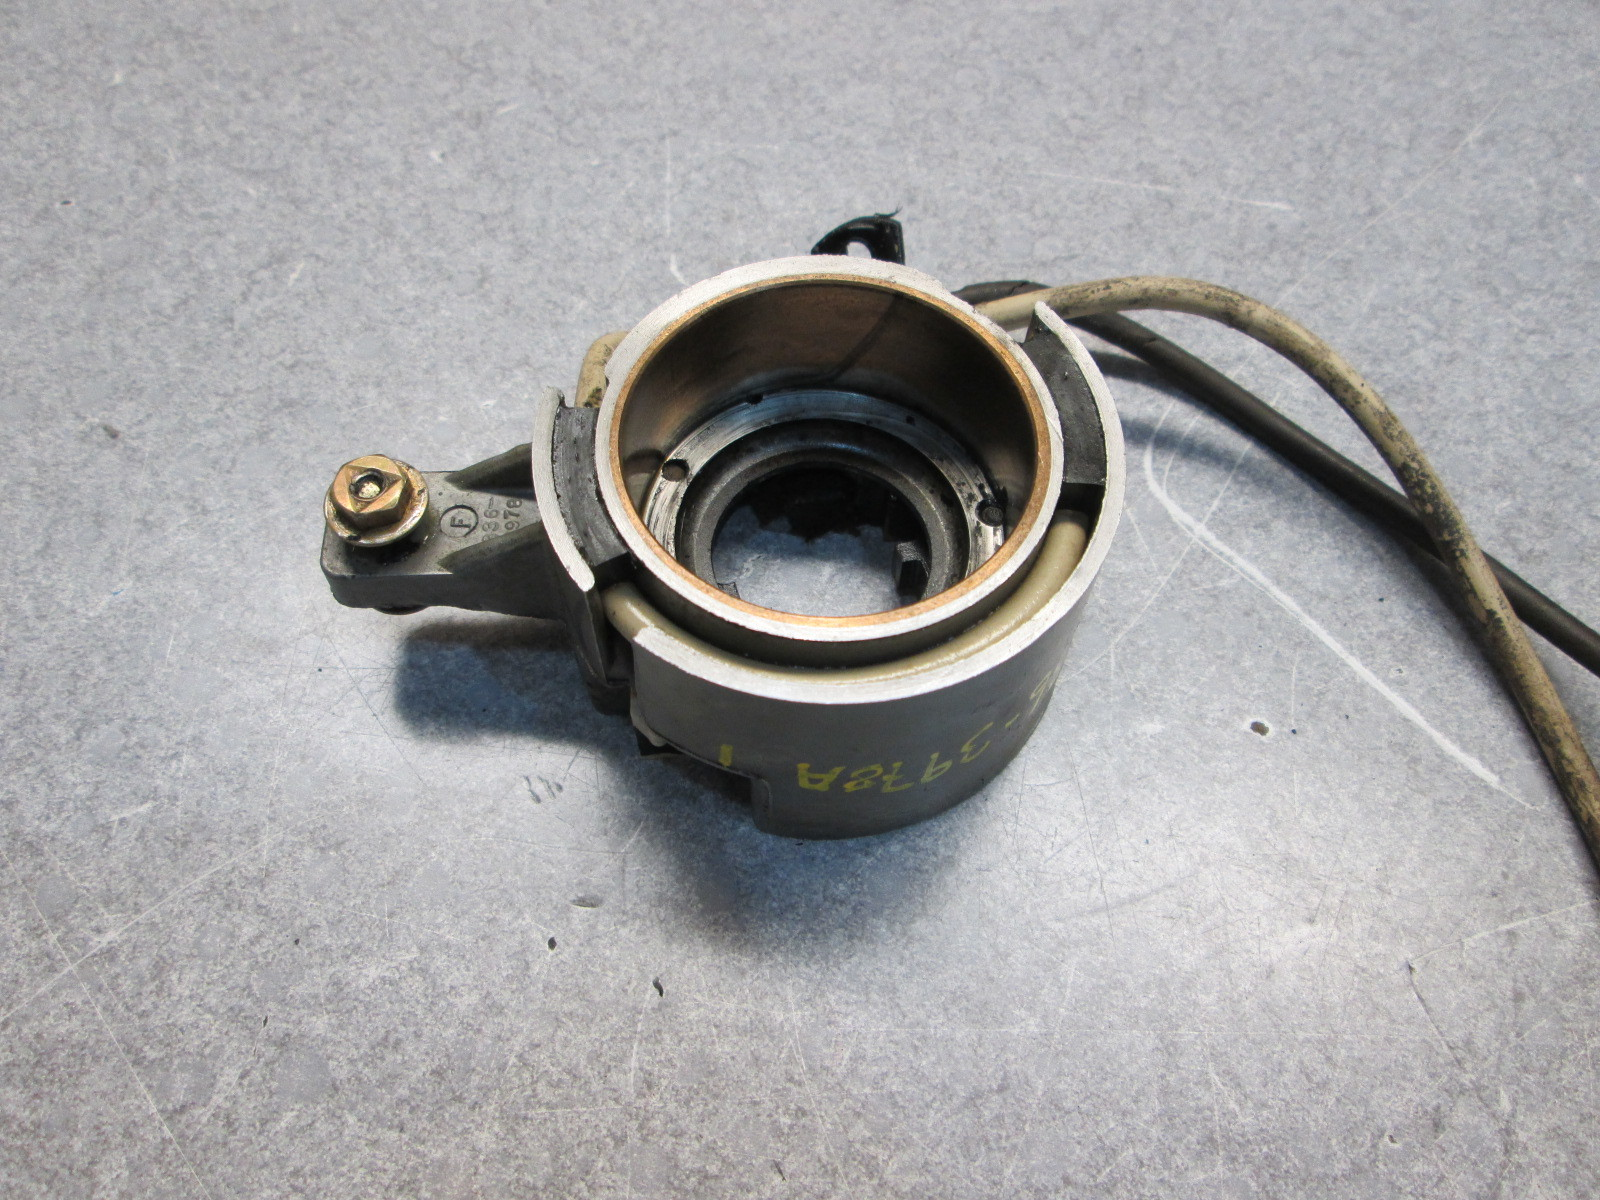 336 3978a 1 contact housing assy for 1970 mercury 200 20 for Used 200 hp mercury outboard motors for sale